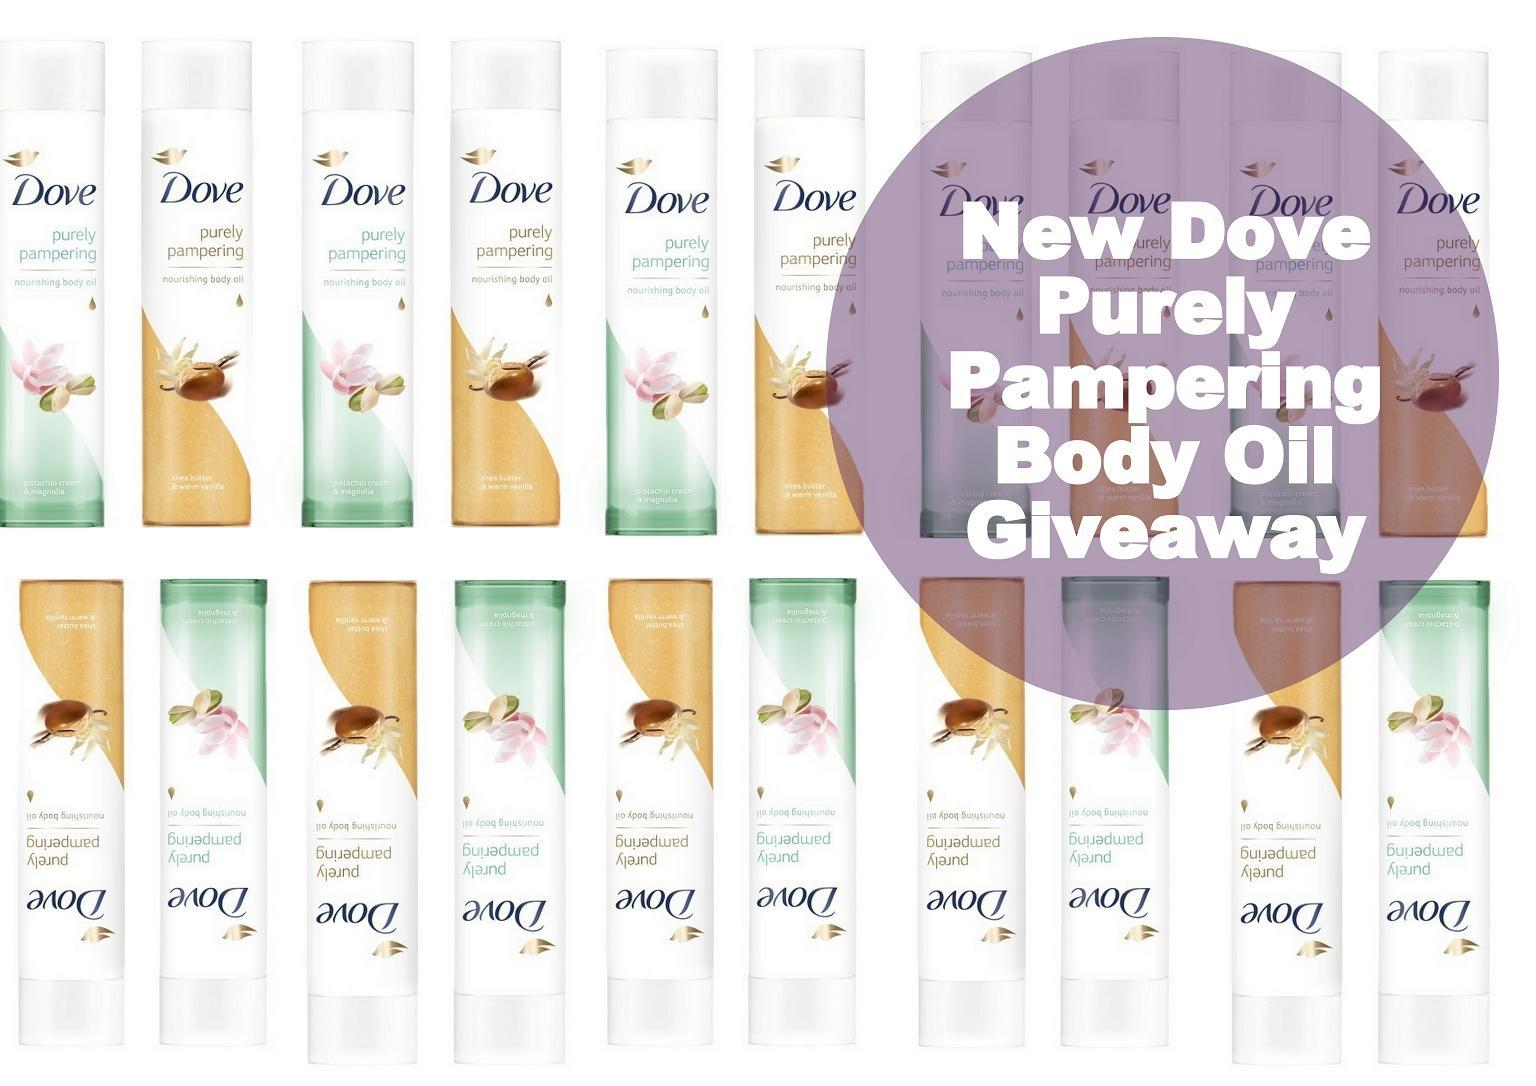 Dove Purely Pampering Body Oil Giveaway